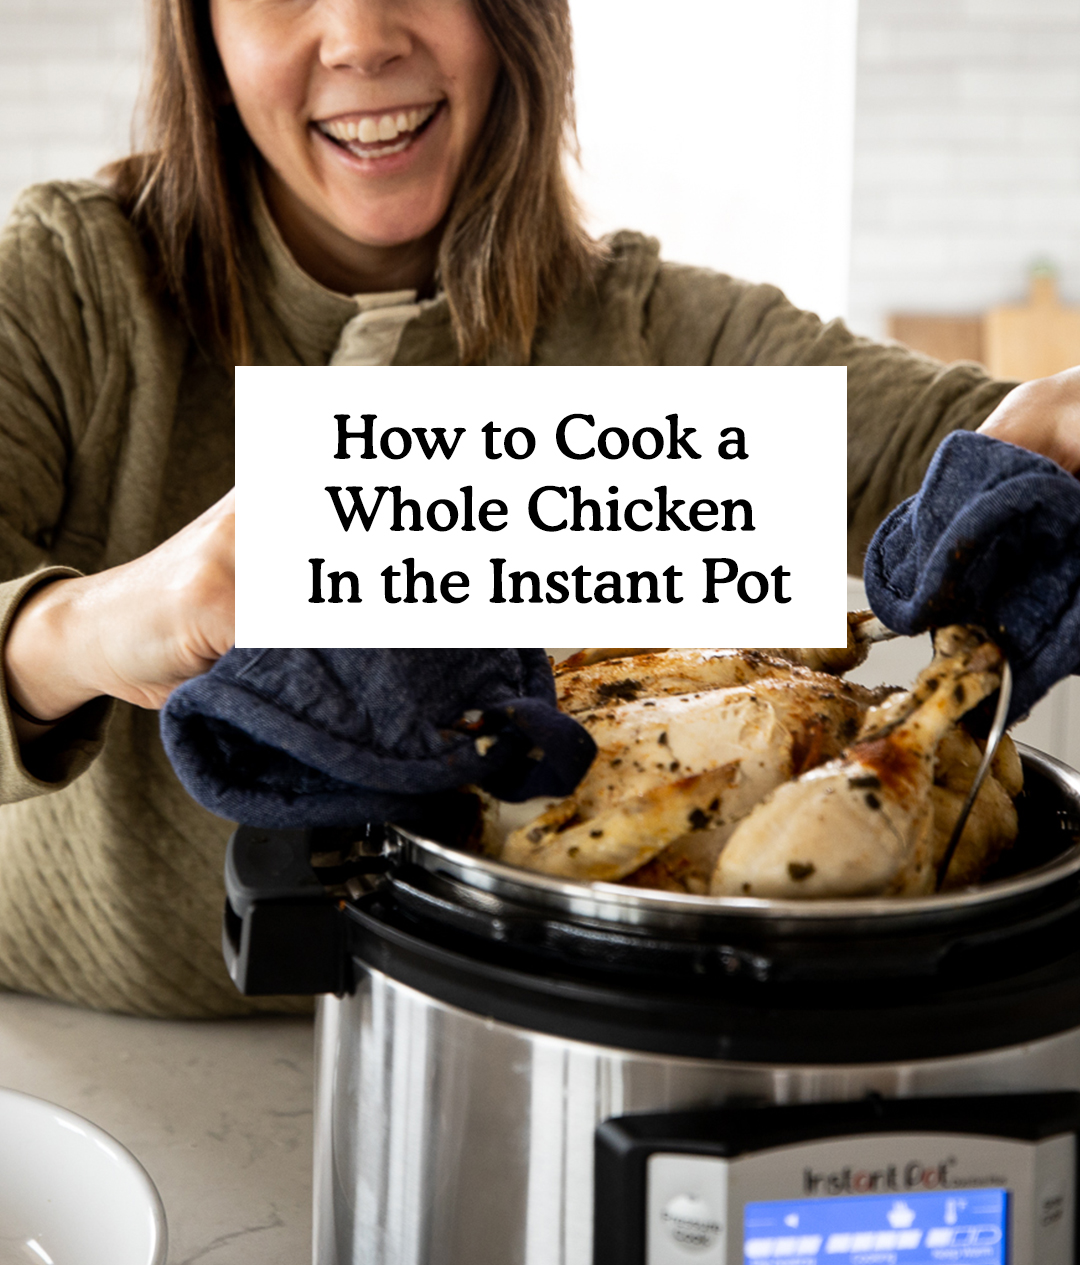 How to cook a Whole Chicken in the Instant Pot Either Frozen or Thawed. Whole Chicken Instant Pot Recipe